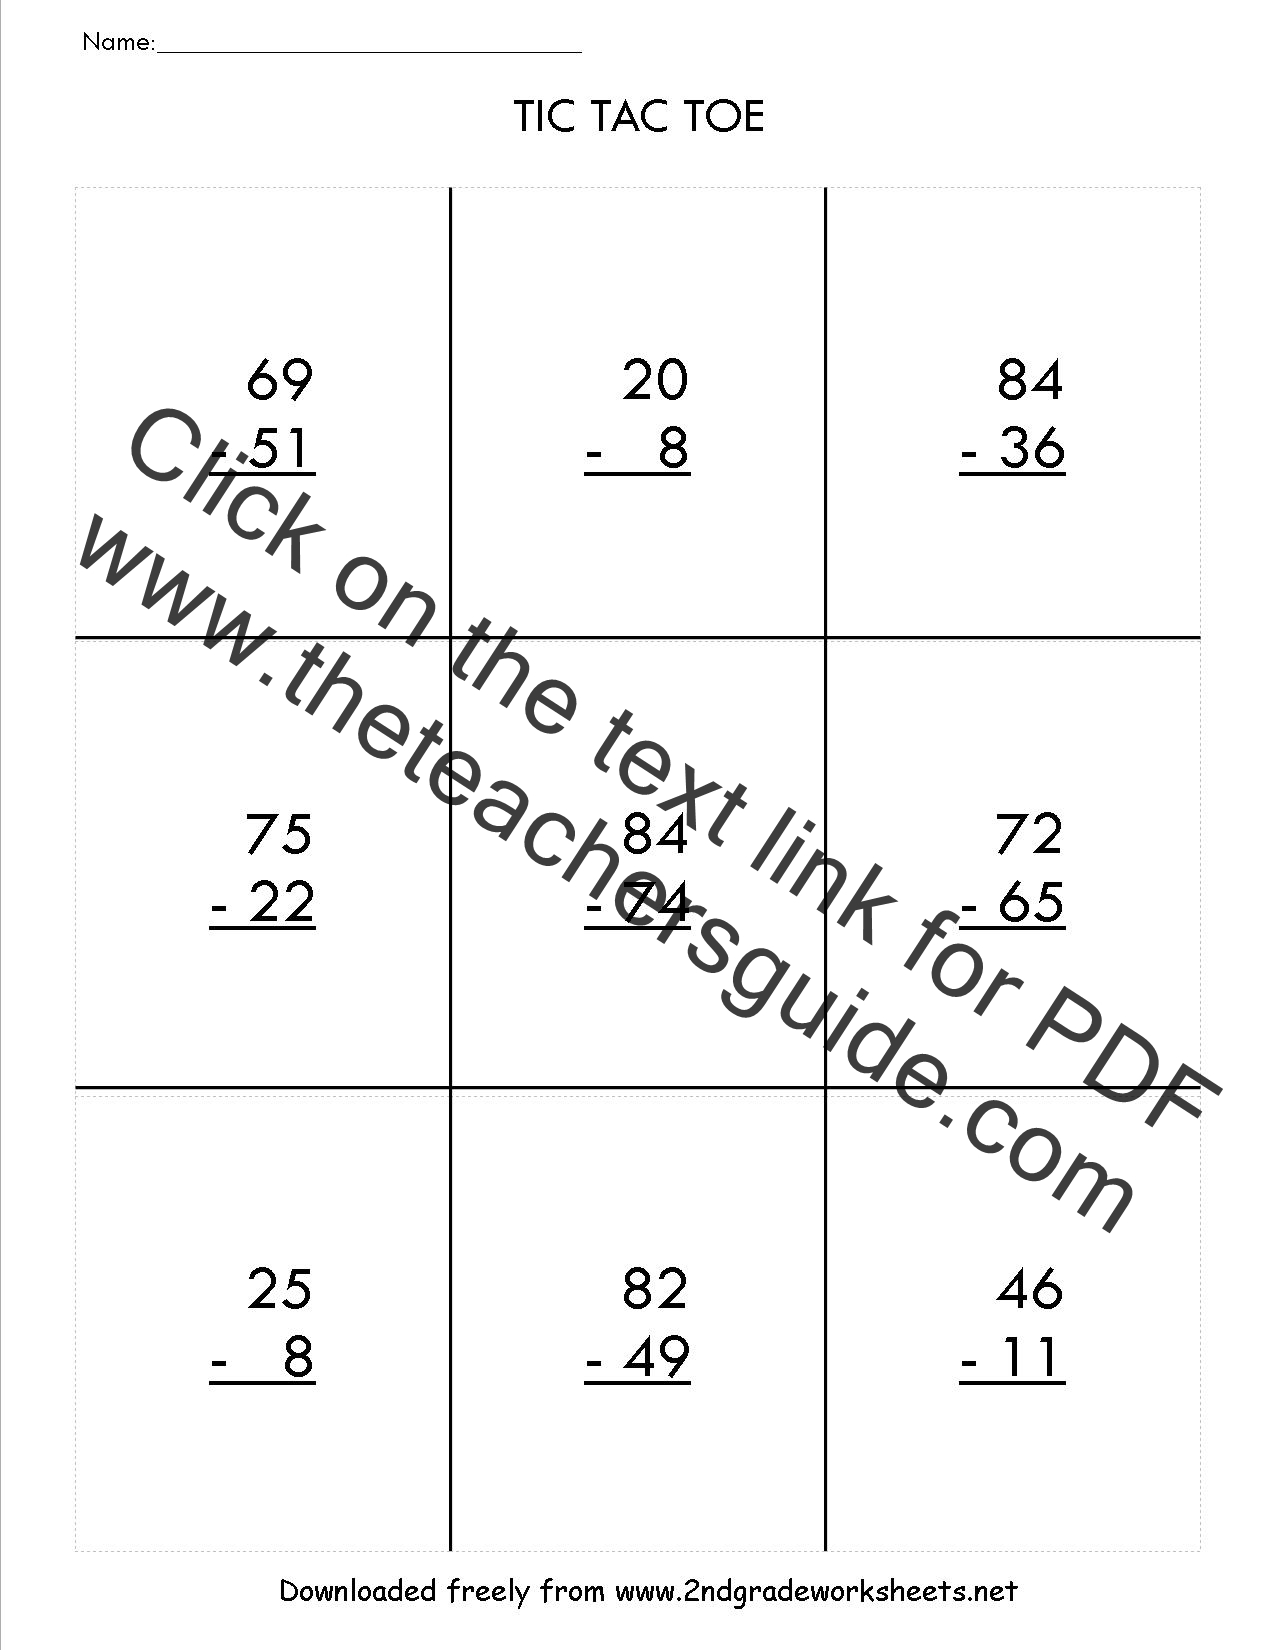 Two Digit Subtraction Worksheets – 2 Digit Subtraction Without Regrouping Worksheets